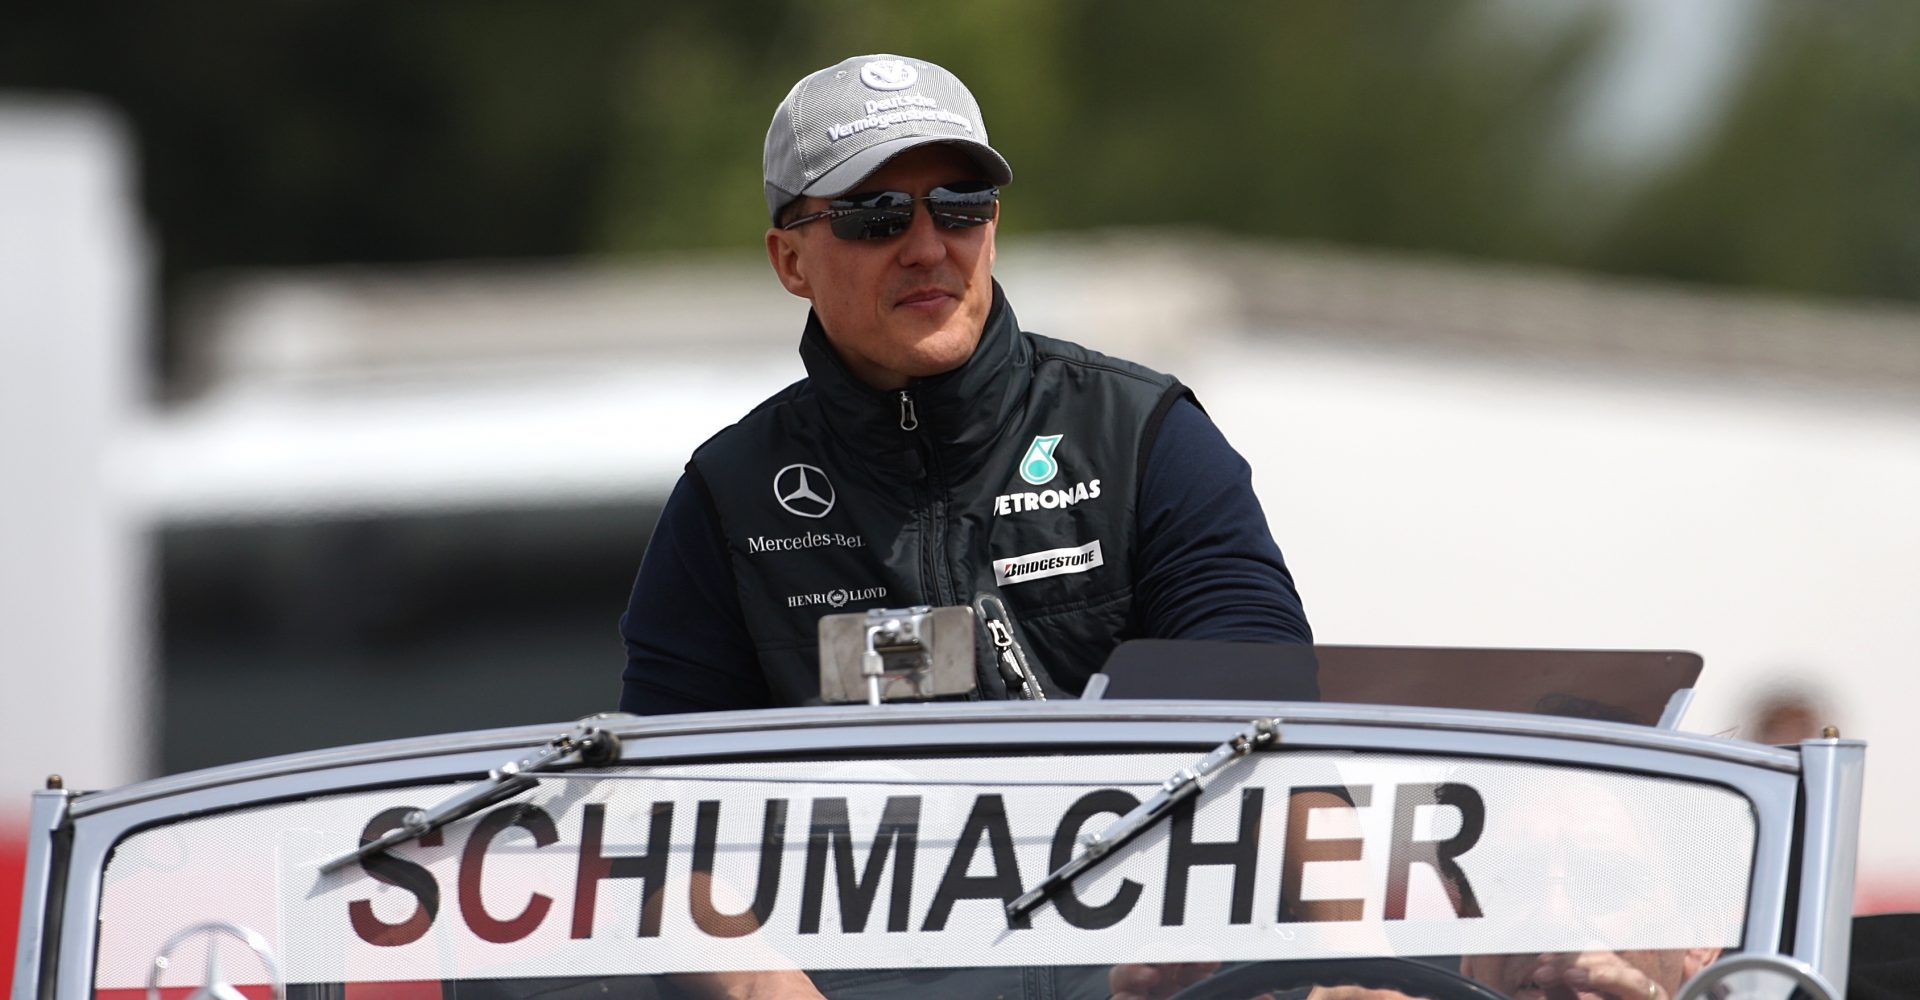 Michael Schumacher Injuries So Bad 'He Cannot Walk', Says Lawyer